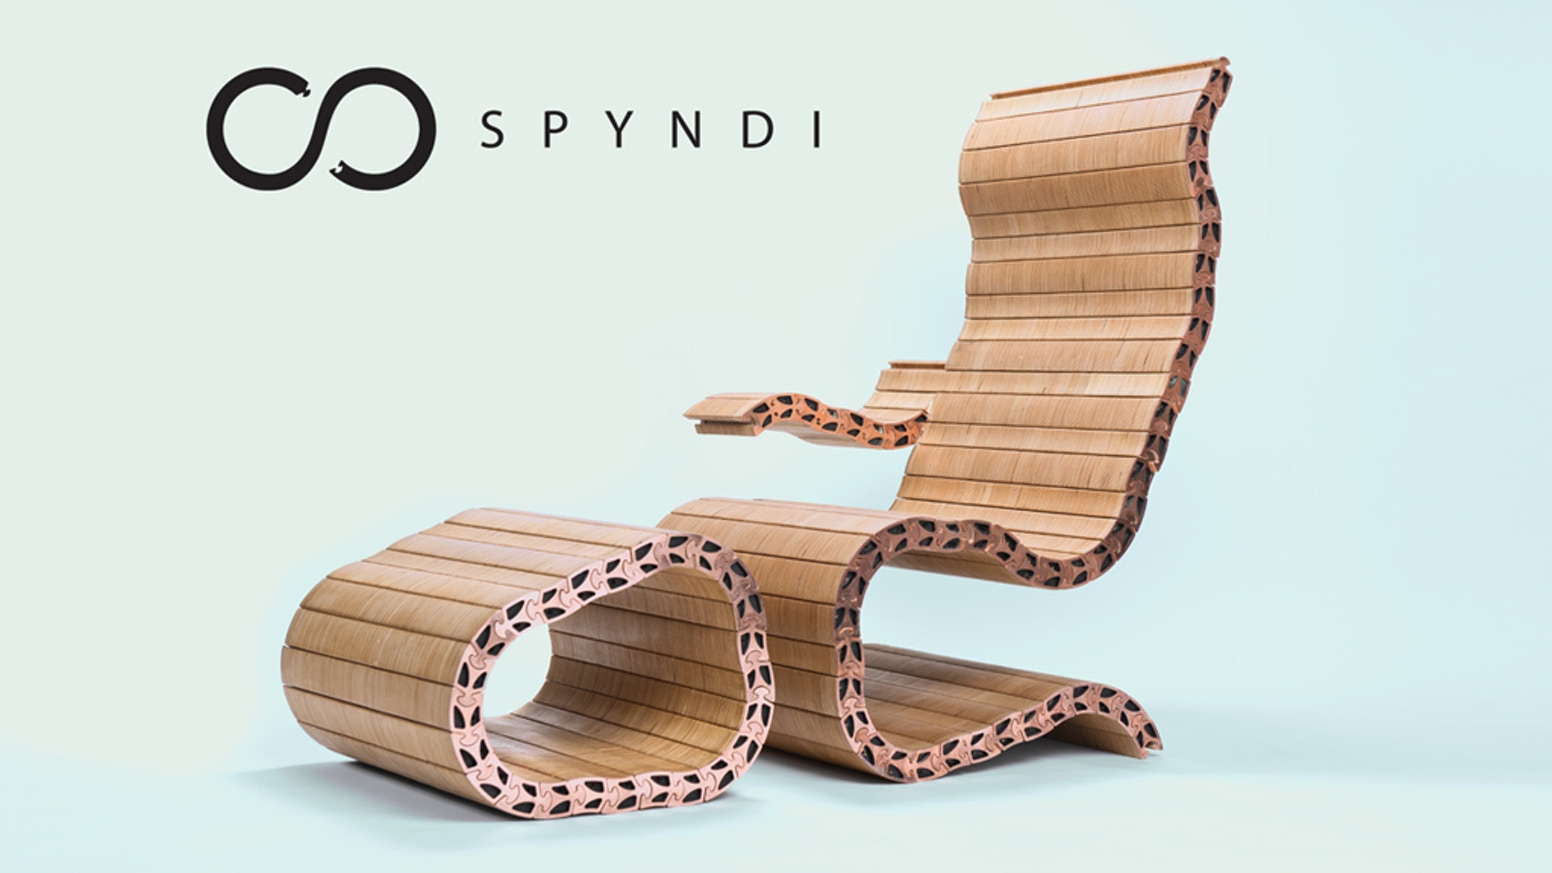 Comfortable + entertaining + multifuncional + exclusive + luxurious + masterpiece + durable + smart + adjustable + affordable = SPYNDI